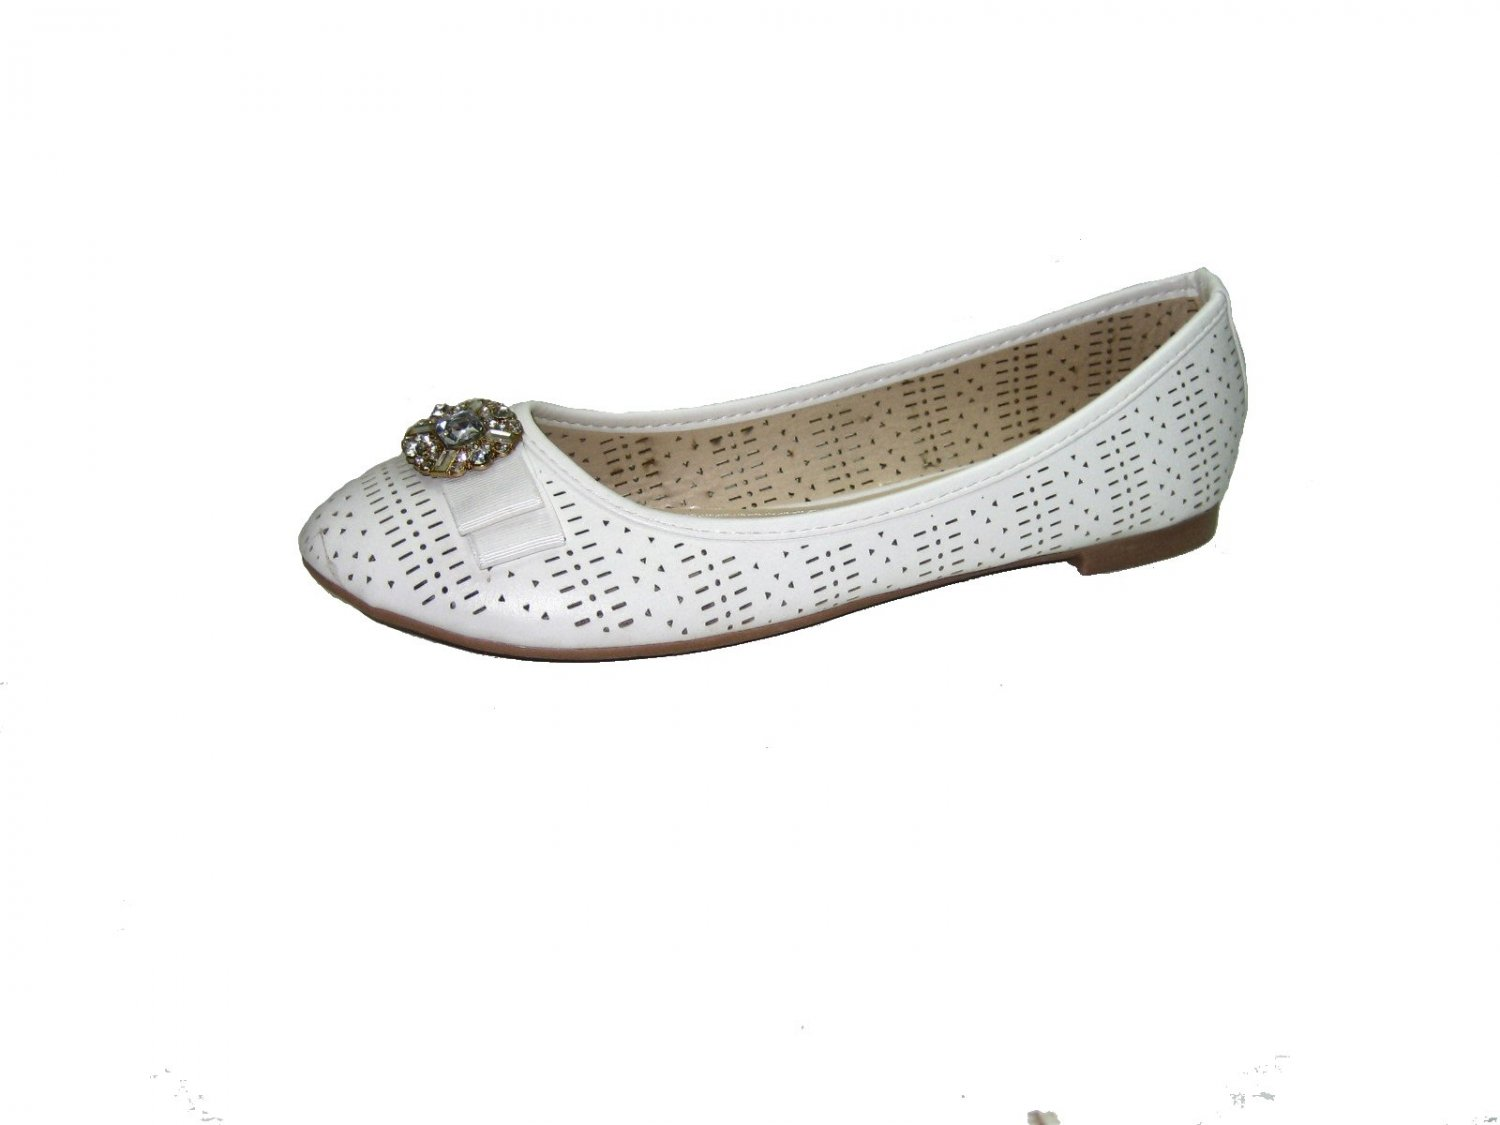 Top Moda SB-25 ballerina flats slip on pumps rhinestone bejeweled bow toe shoes white size 5.5